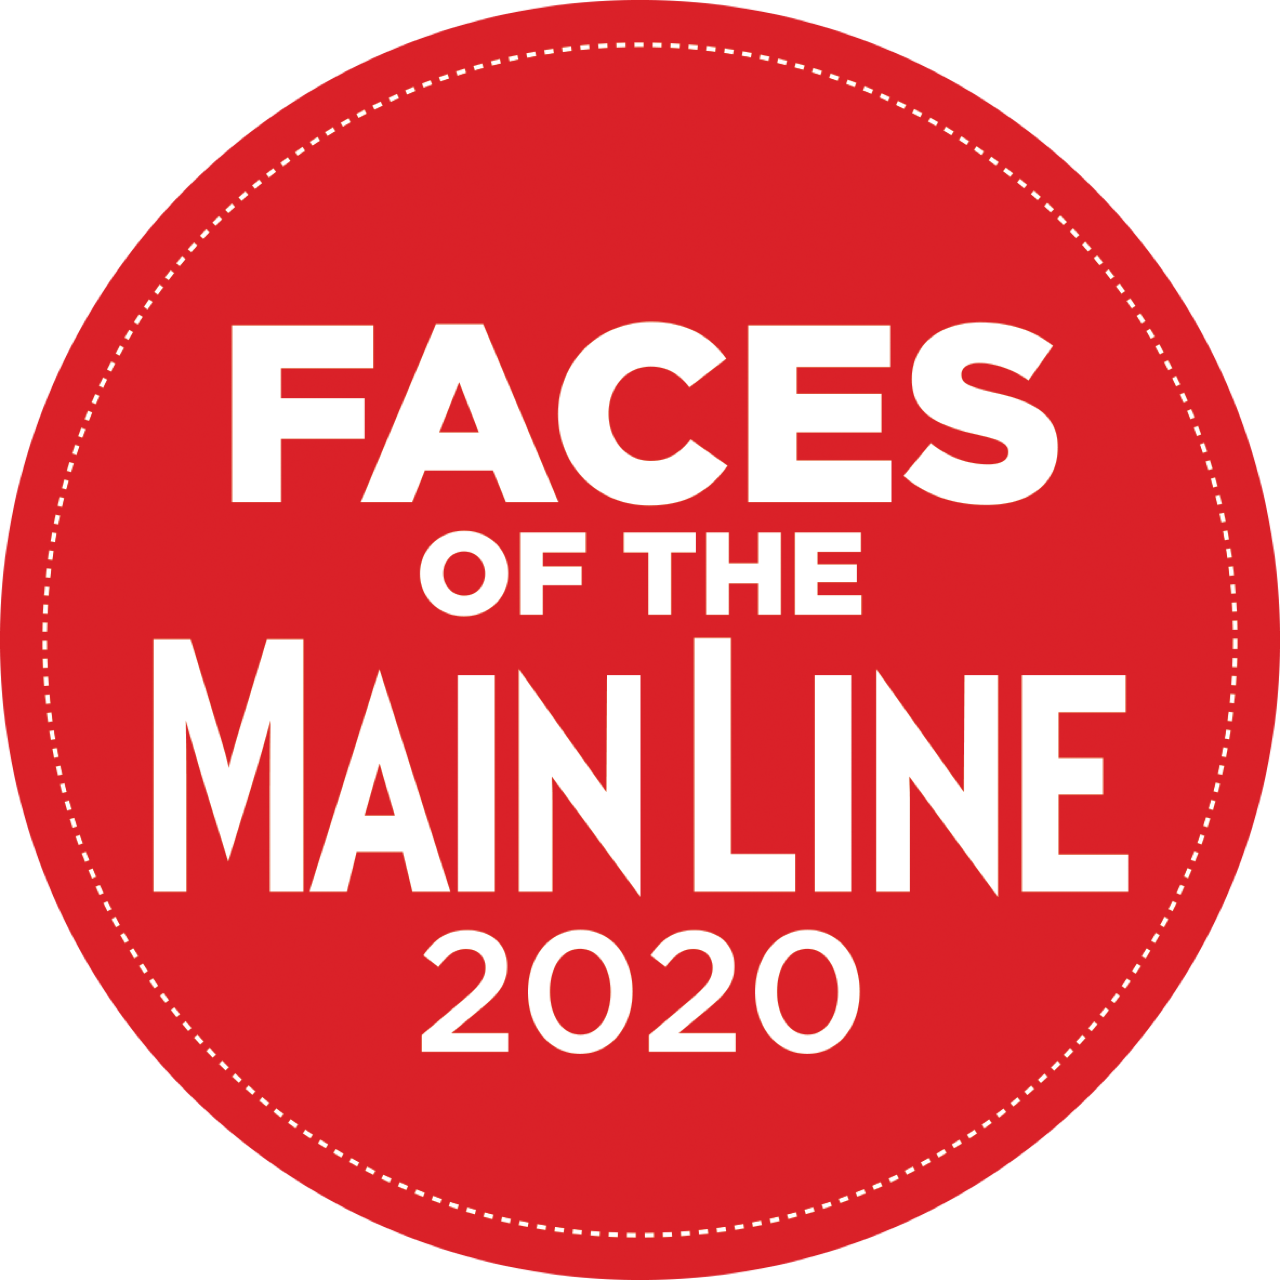 Faces of the MainLine 2020 logo